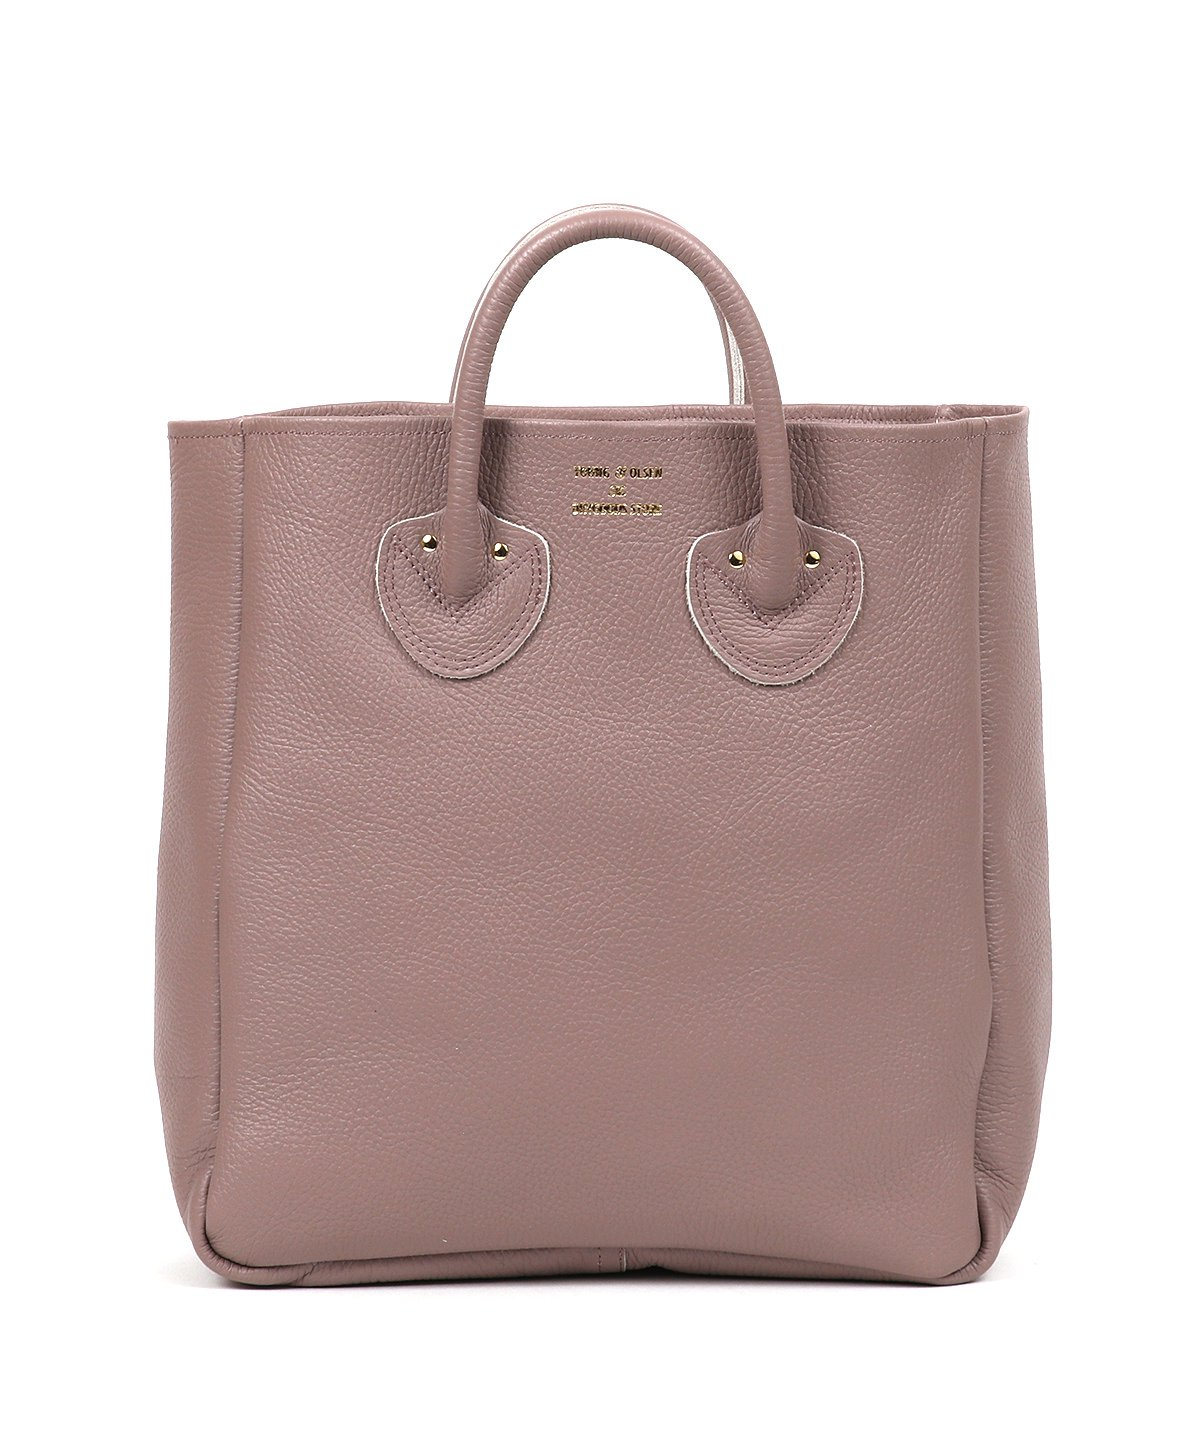 EMBOSSED LEATHER TOTE M